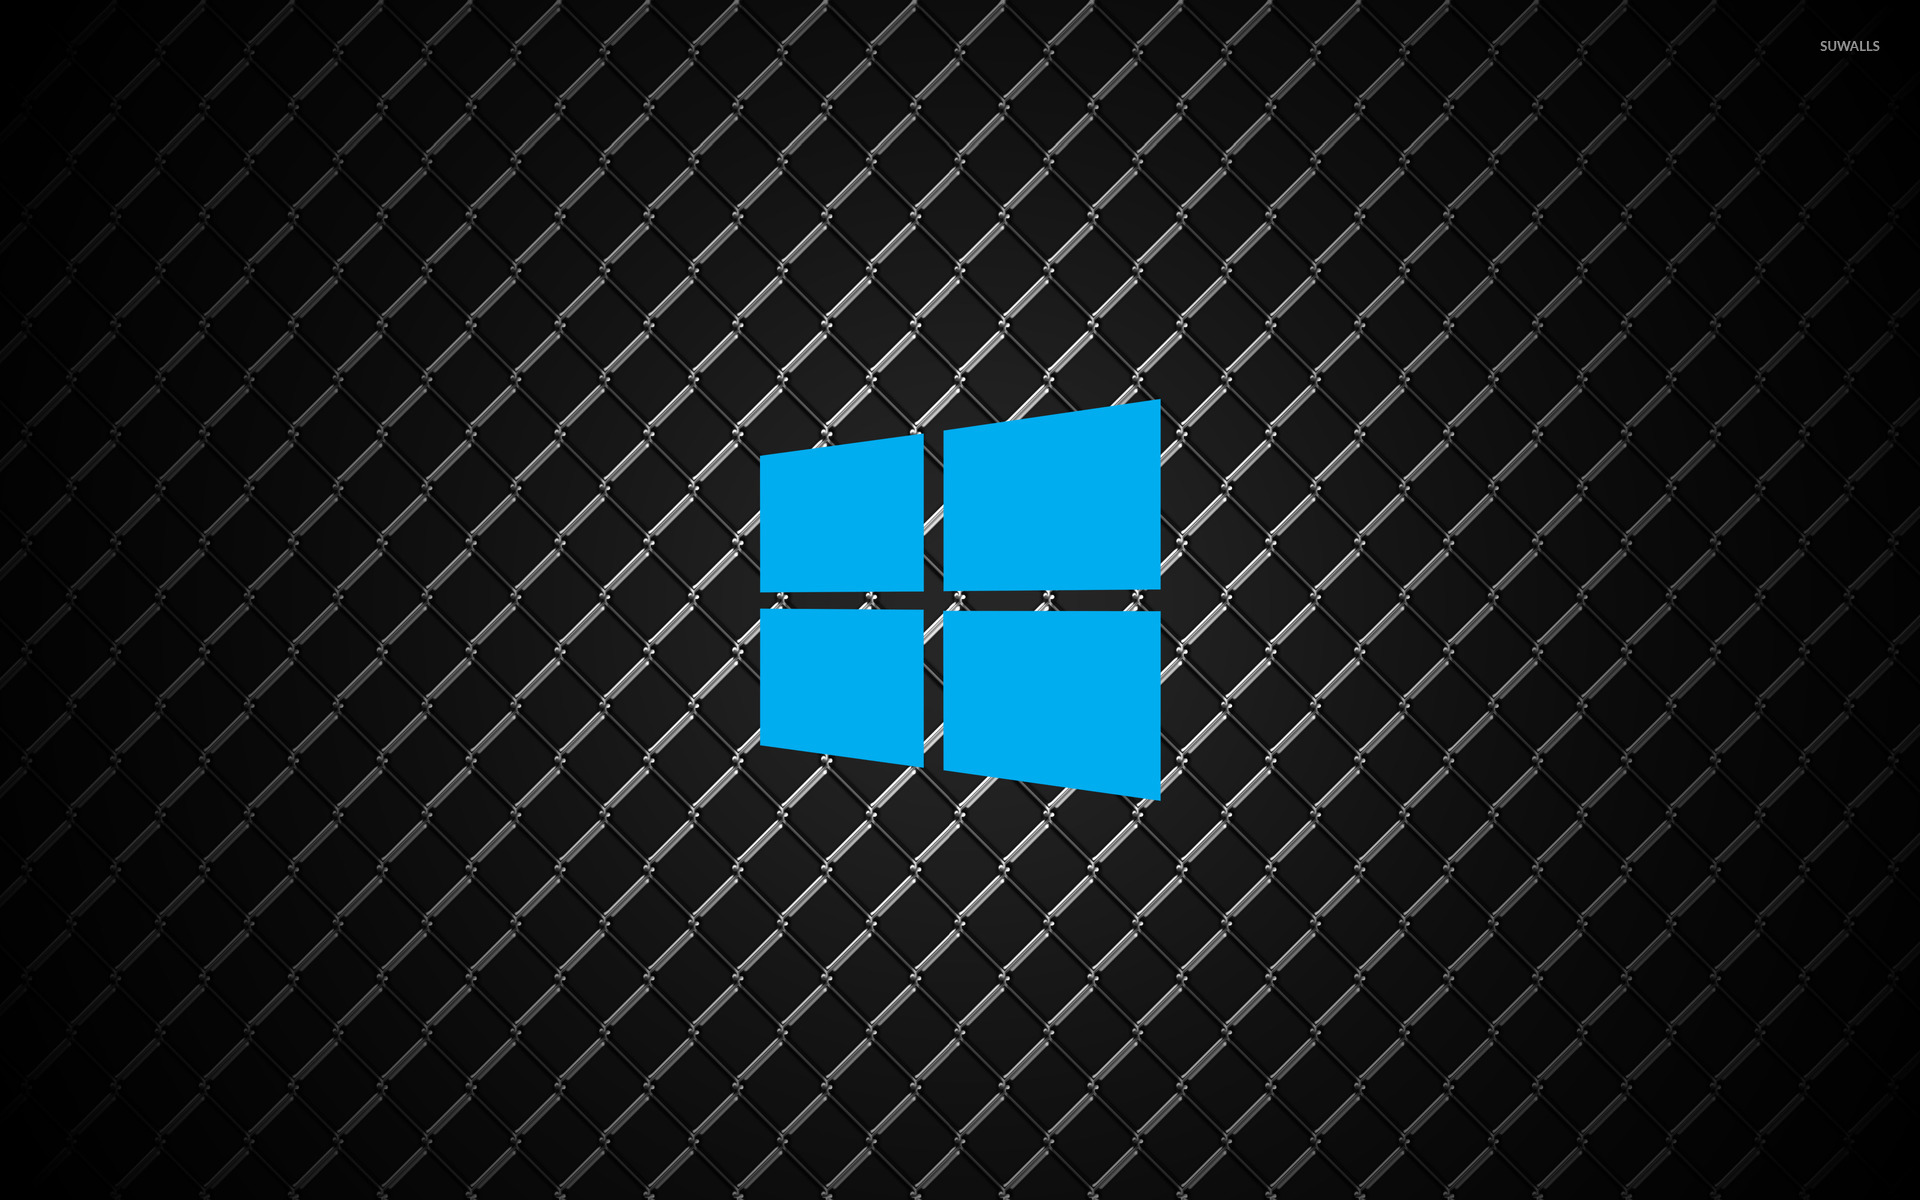 Autumn Leaf Fall Wallpaper Windows 10 Simple Blue Logo On Metal Wallpaper Computer